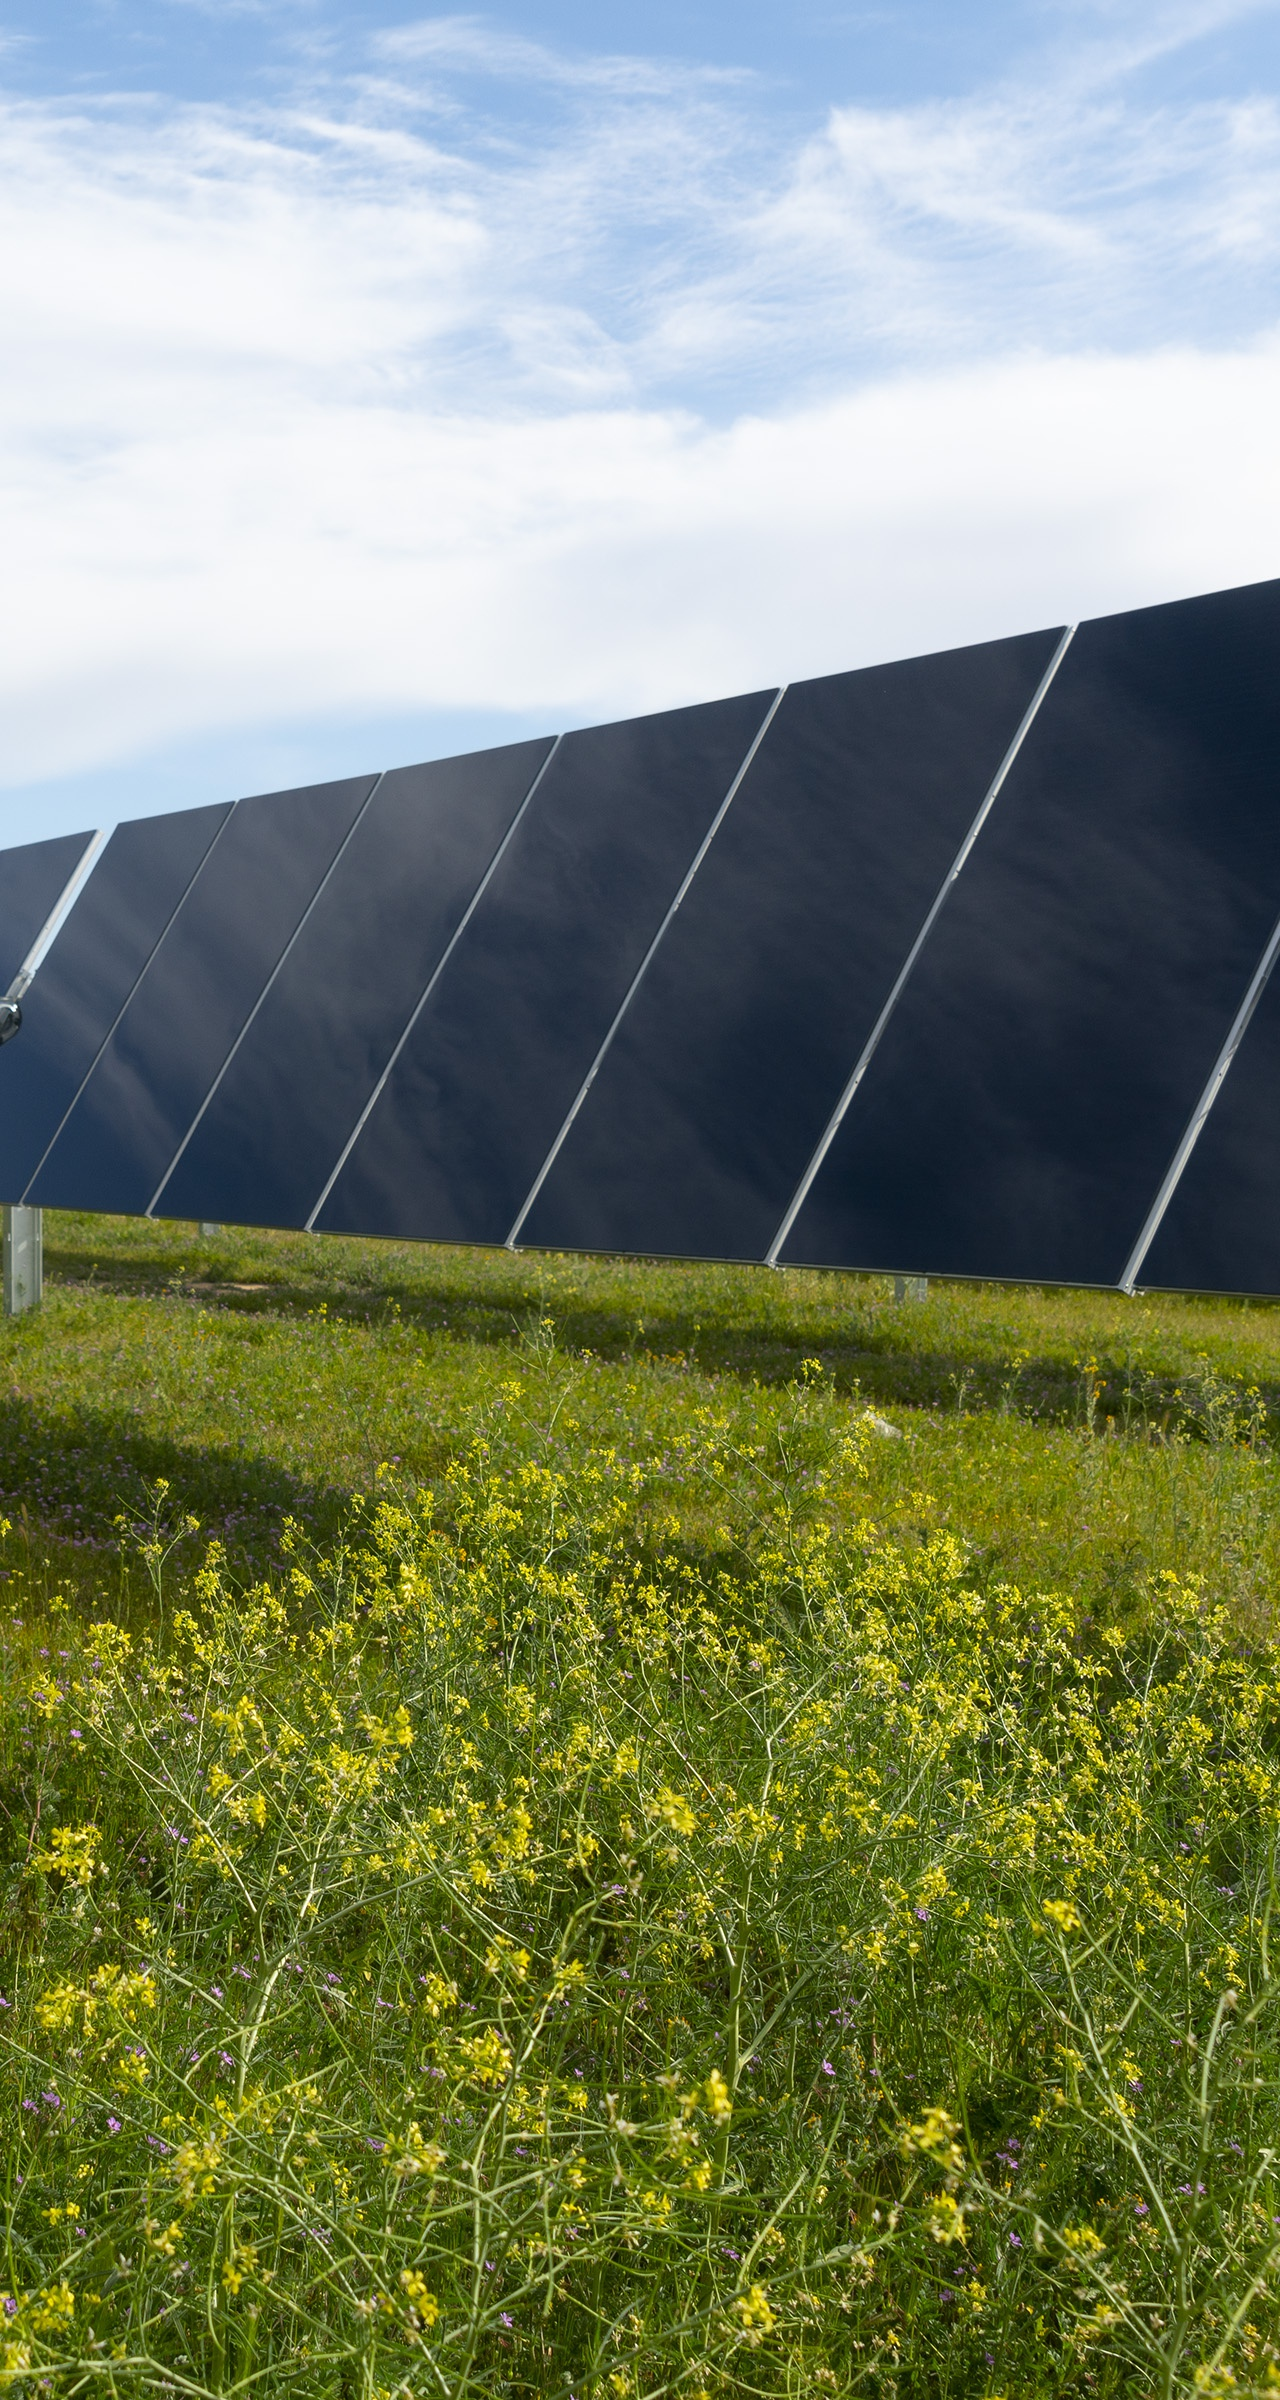 First Solar's Series 6 modules deployed in a project in Kern County, California